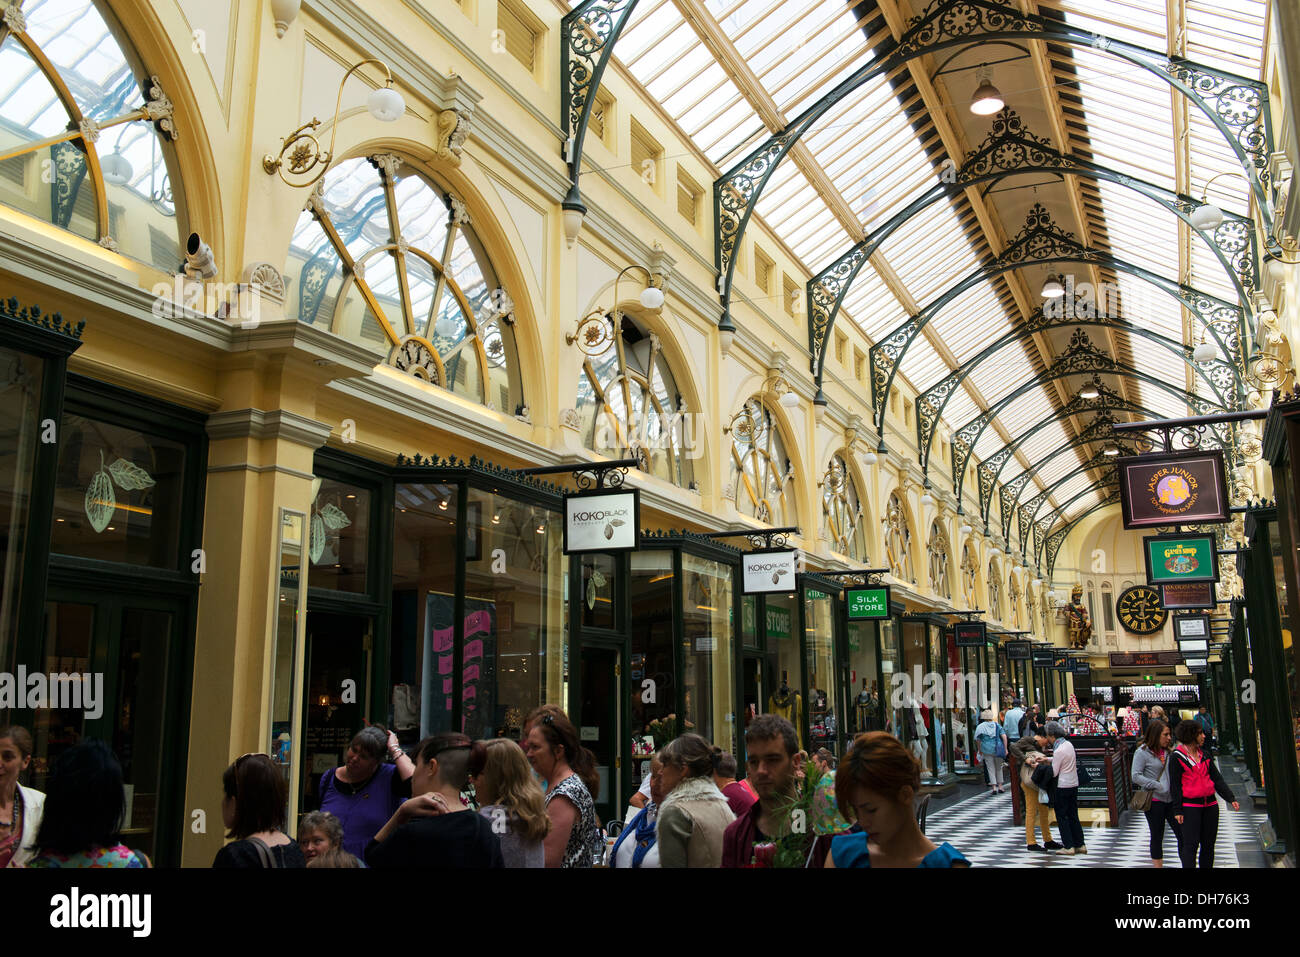 Royal Arcade in Melbourne. - Stock Image